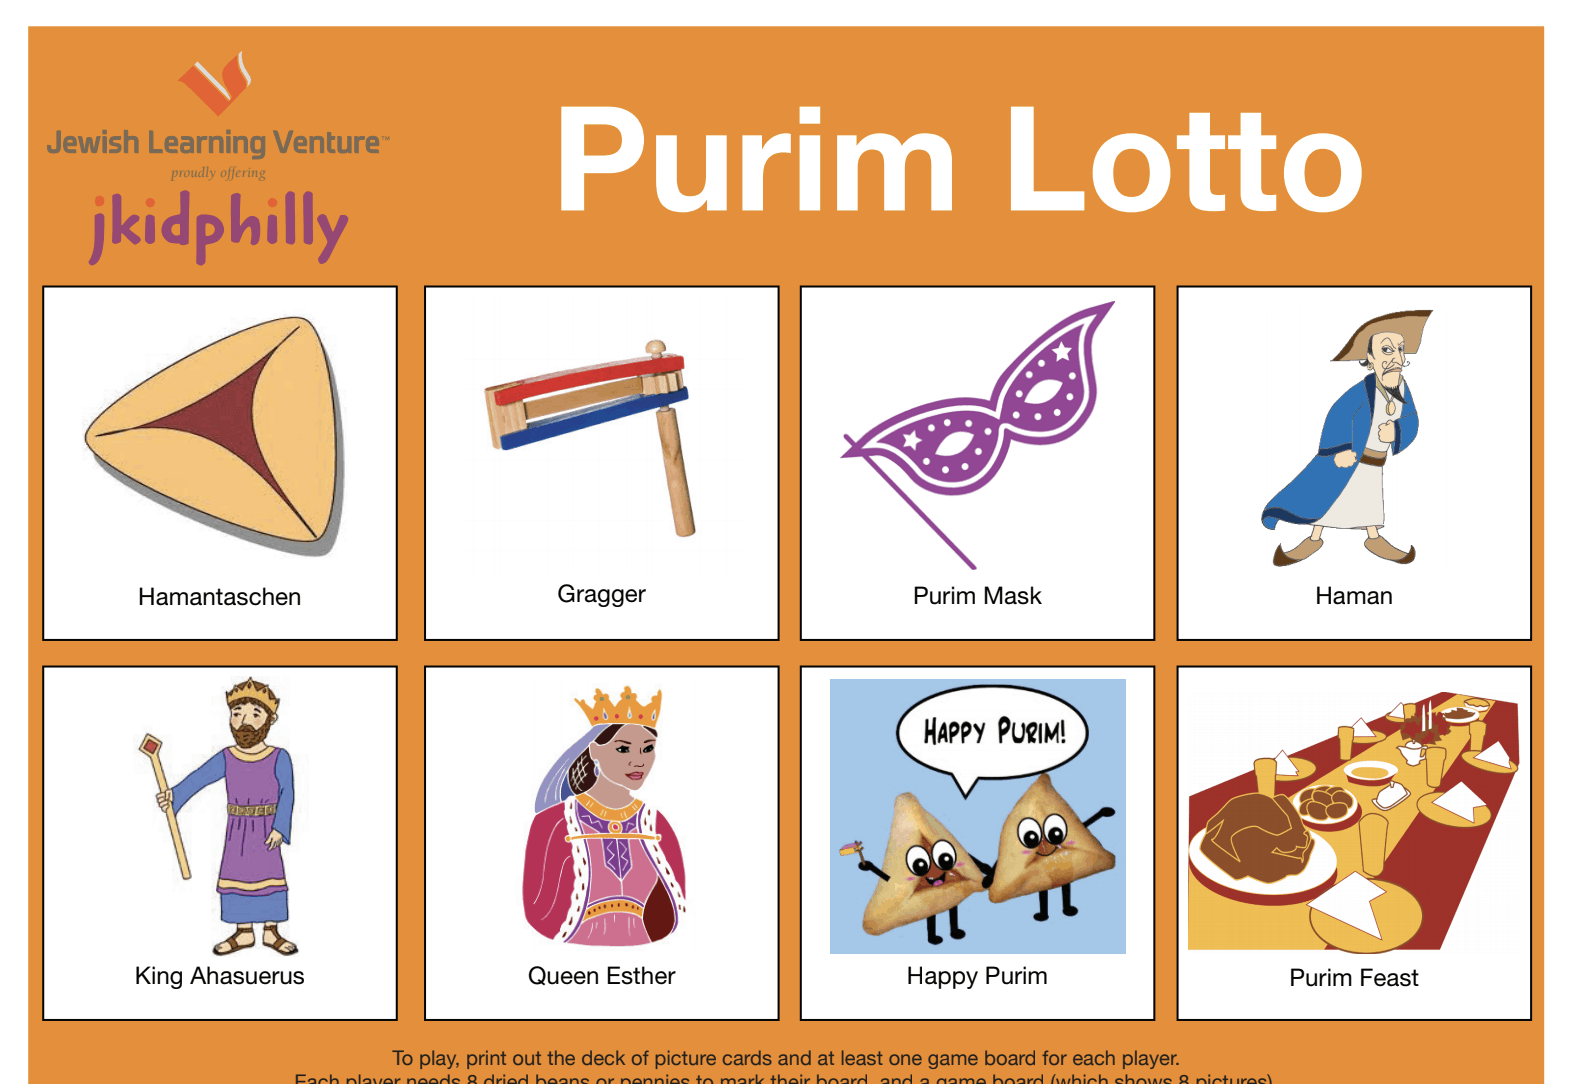 A purim lotto. There are eigut different boxes filled with items including: hamantashen, grogger, purim mask, haman, king ahasuerus, queen esther, happy purim, and purim feast.